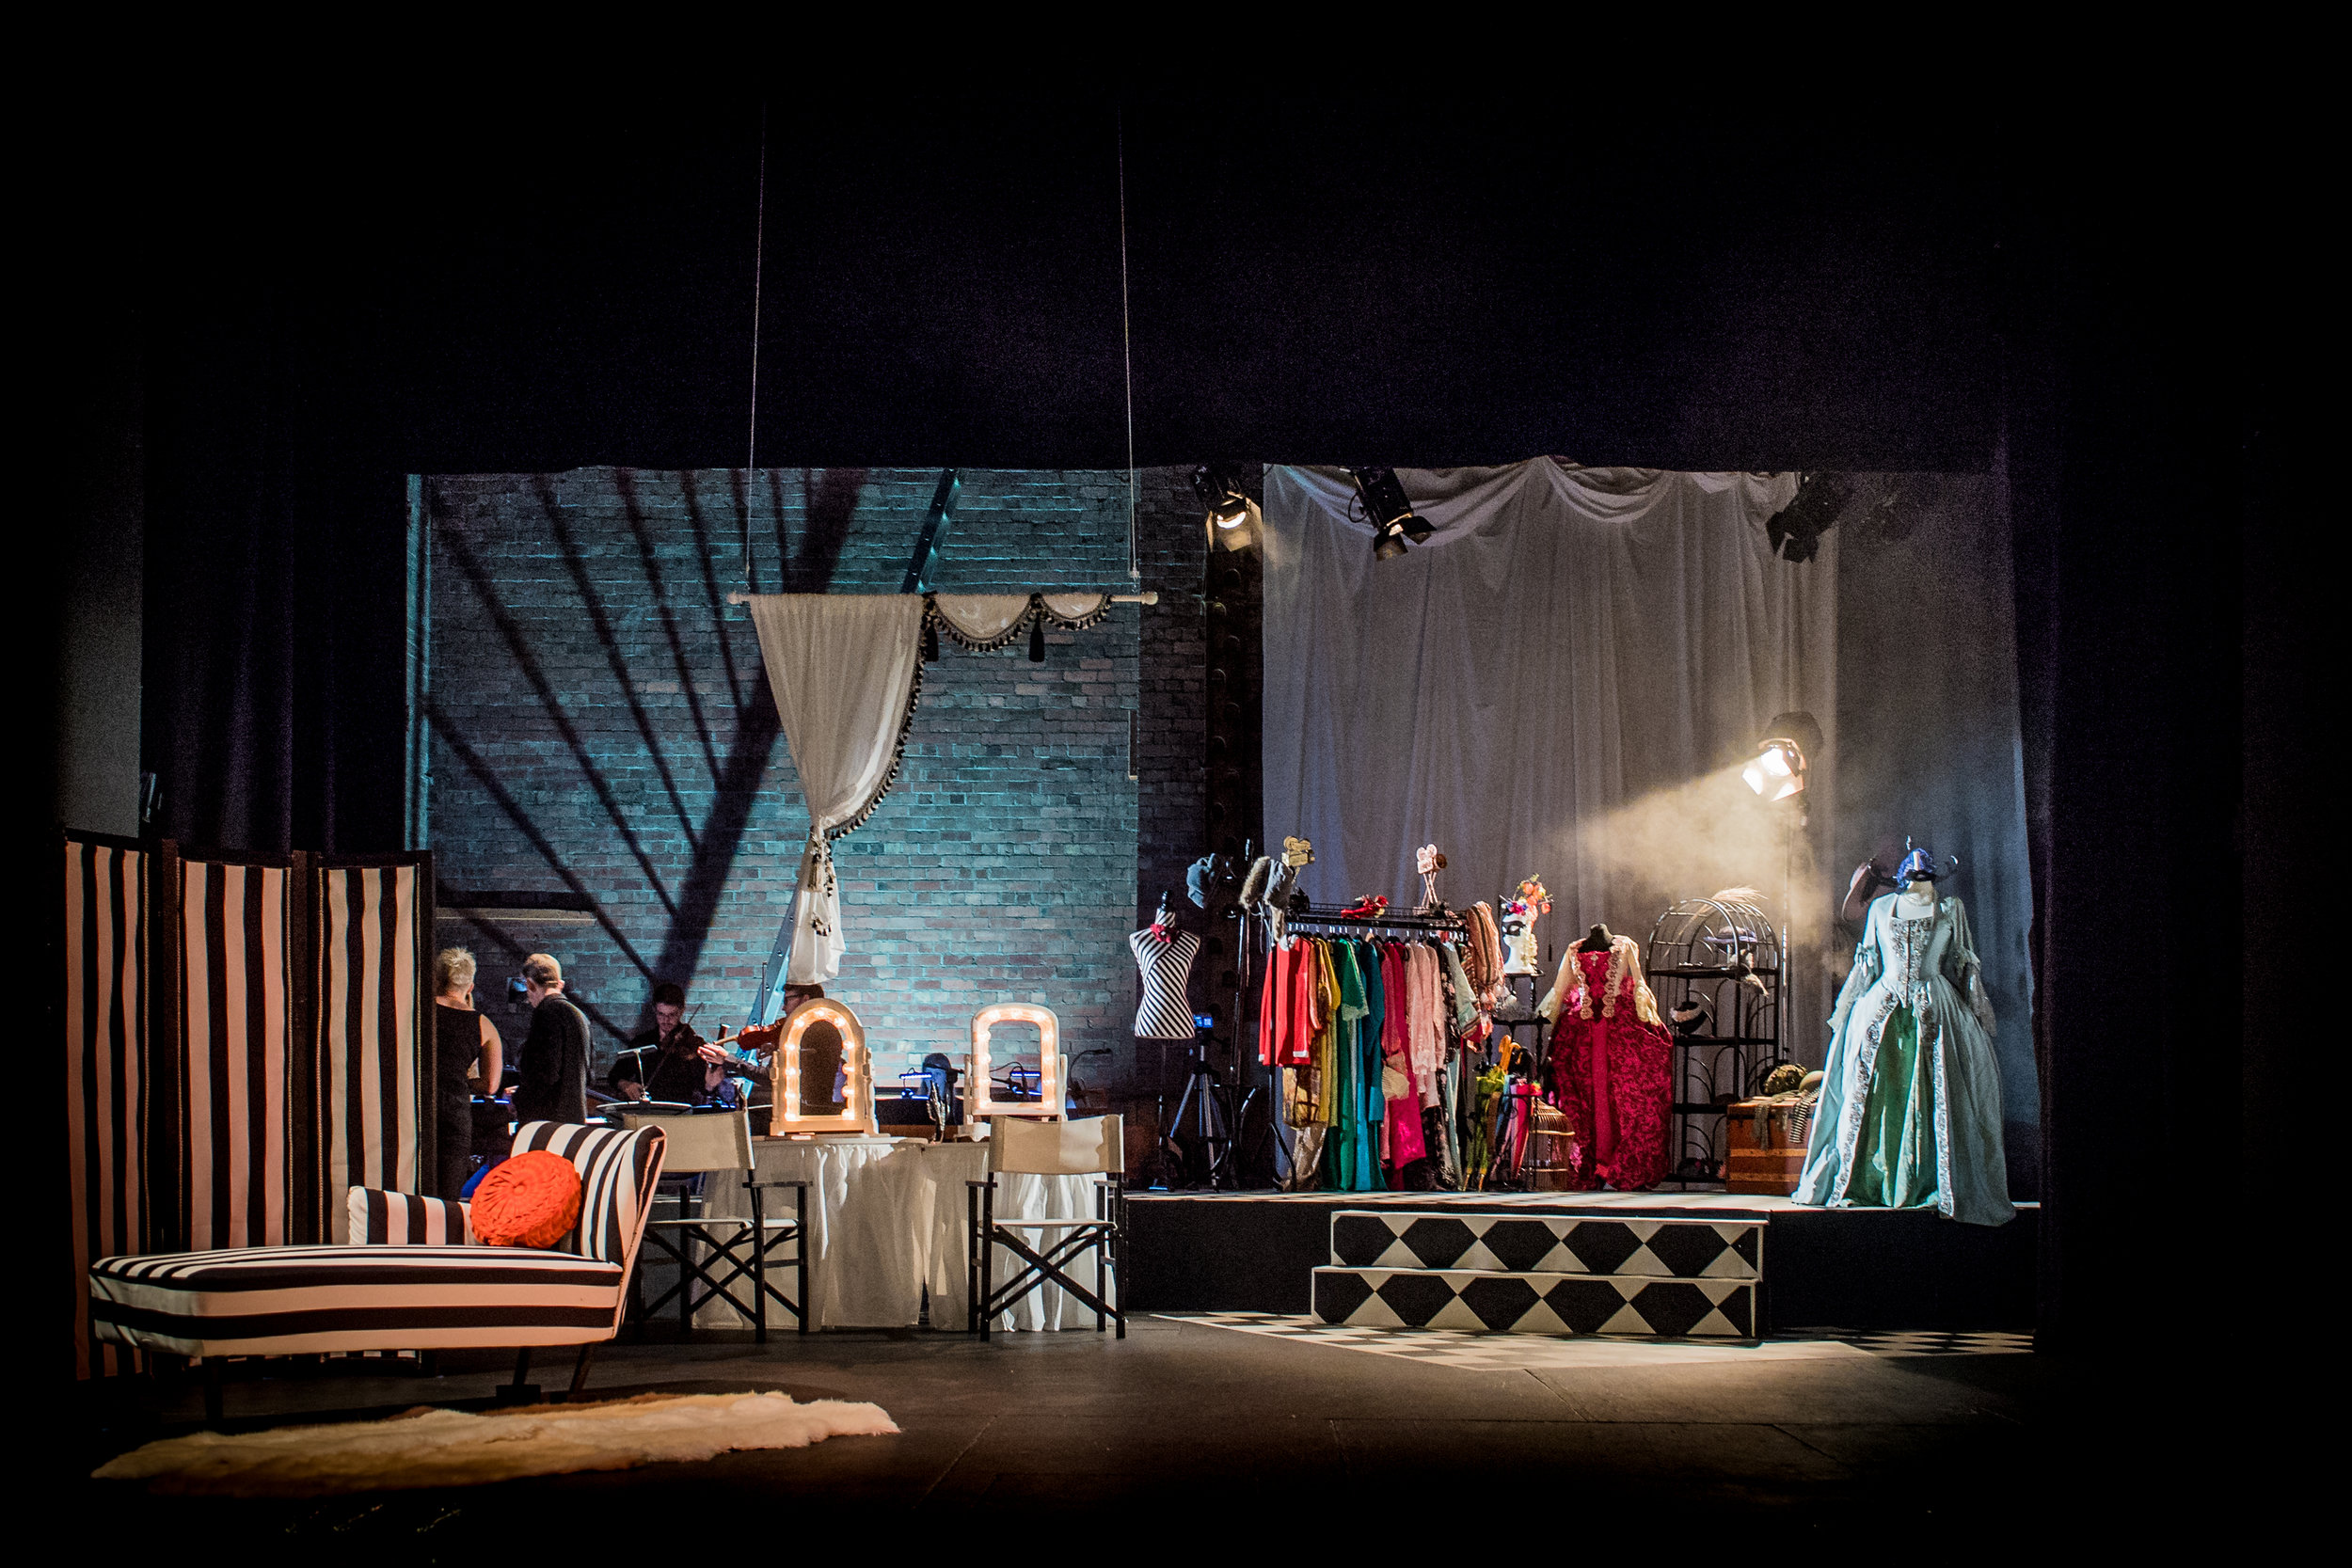 Cosí fan Tutte, Ryedale Festival Opera. Designer Laura Jane Stanfield, Lighting Designer Ben Pickersgill. Photo Robert Workman